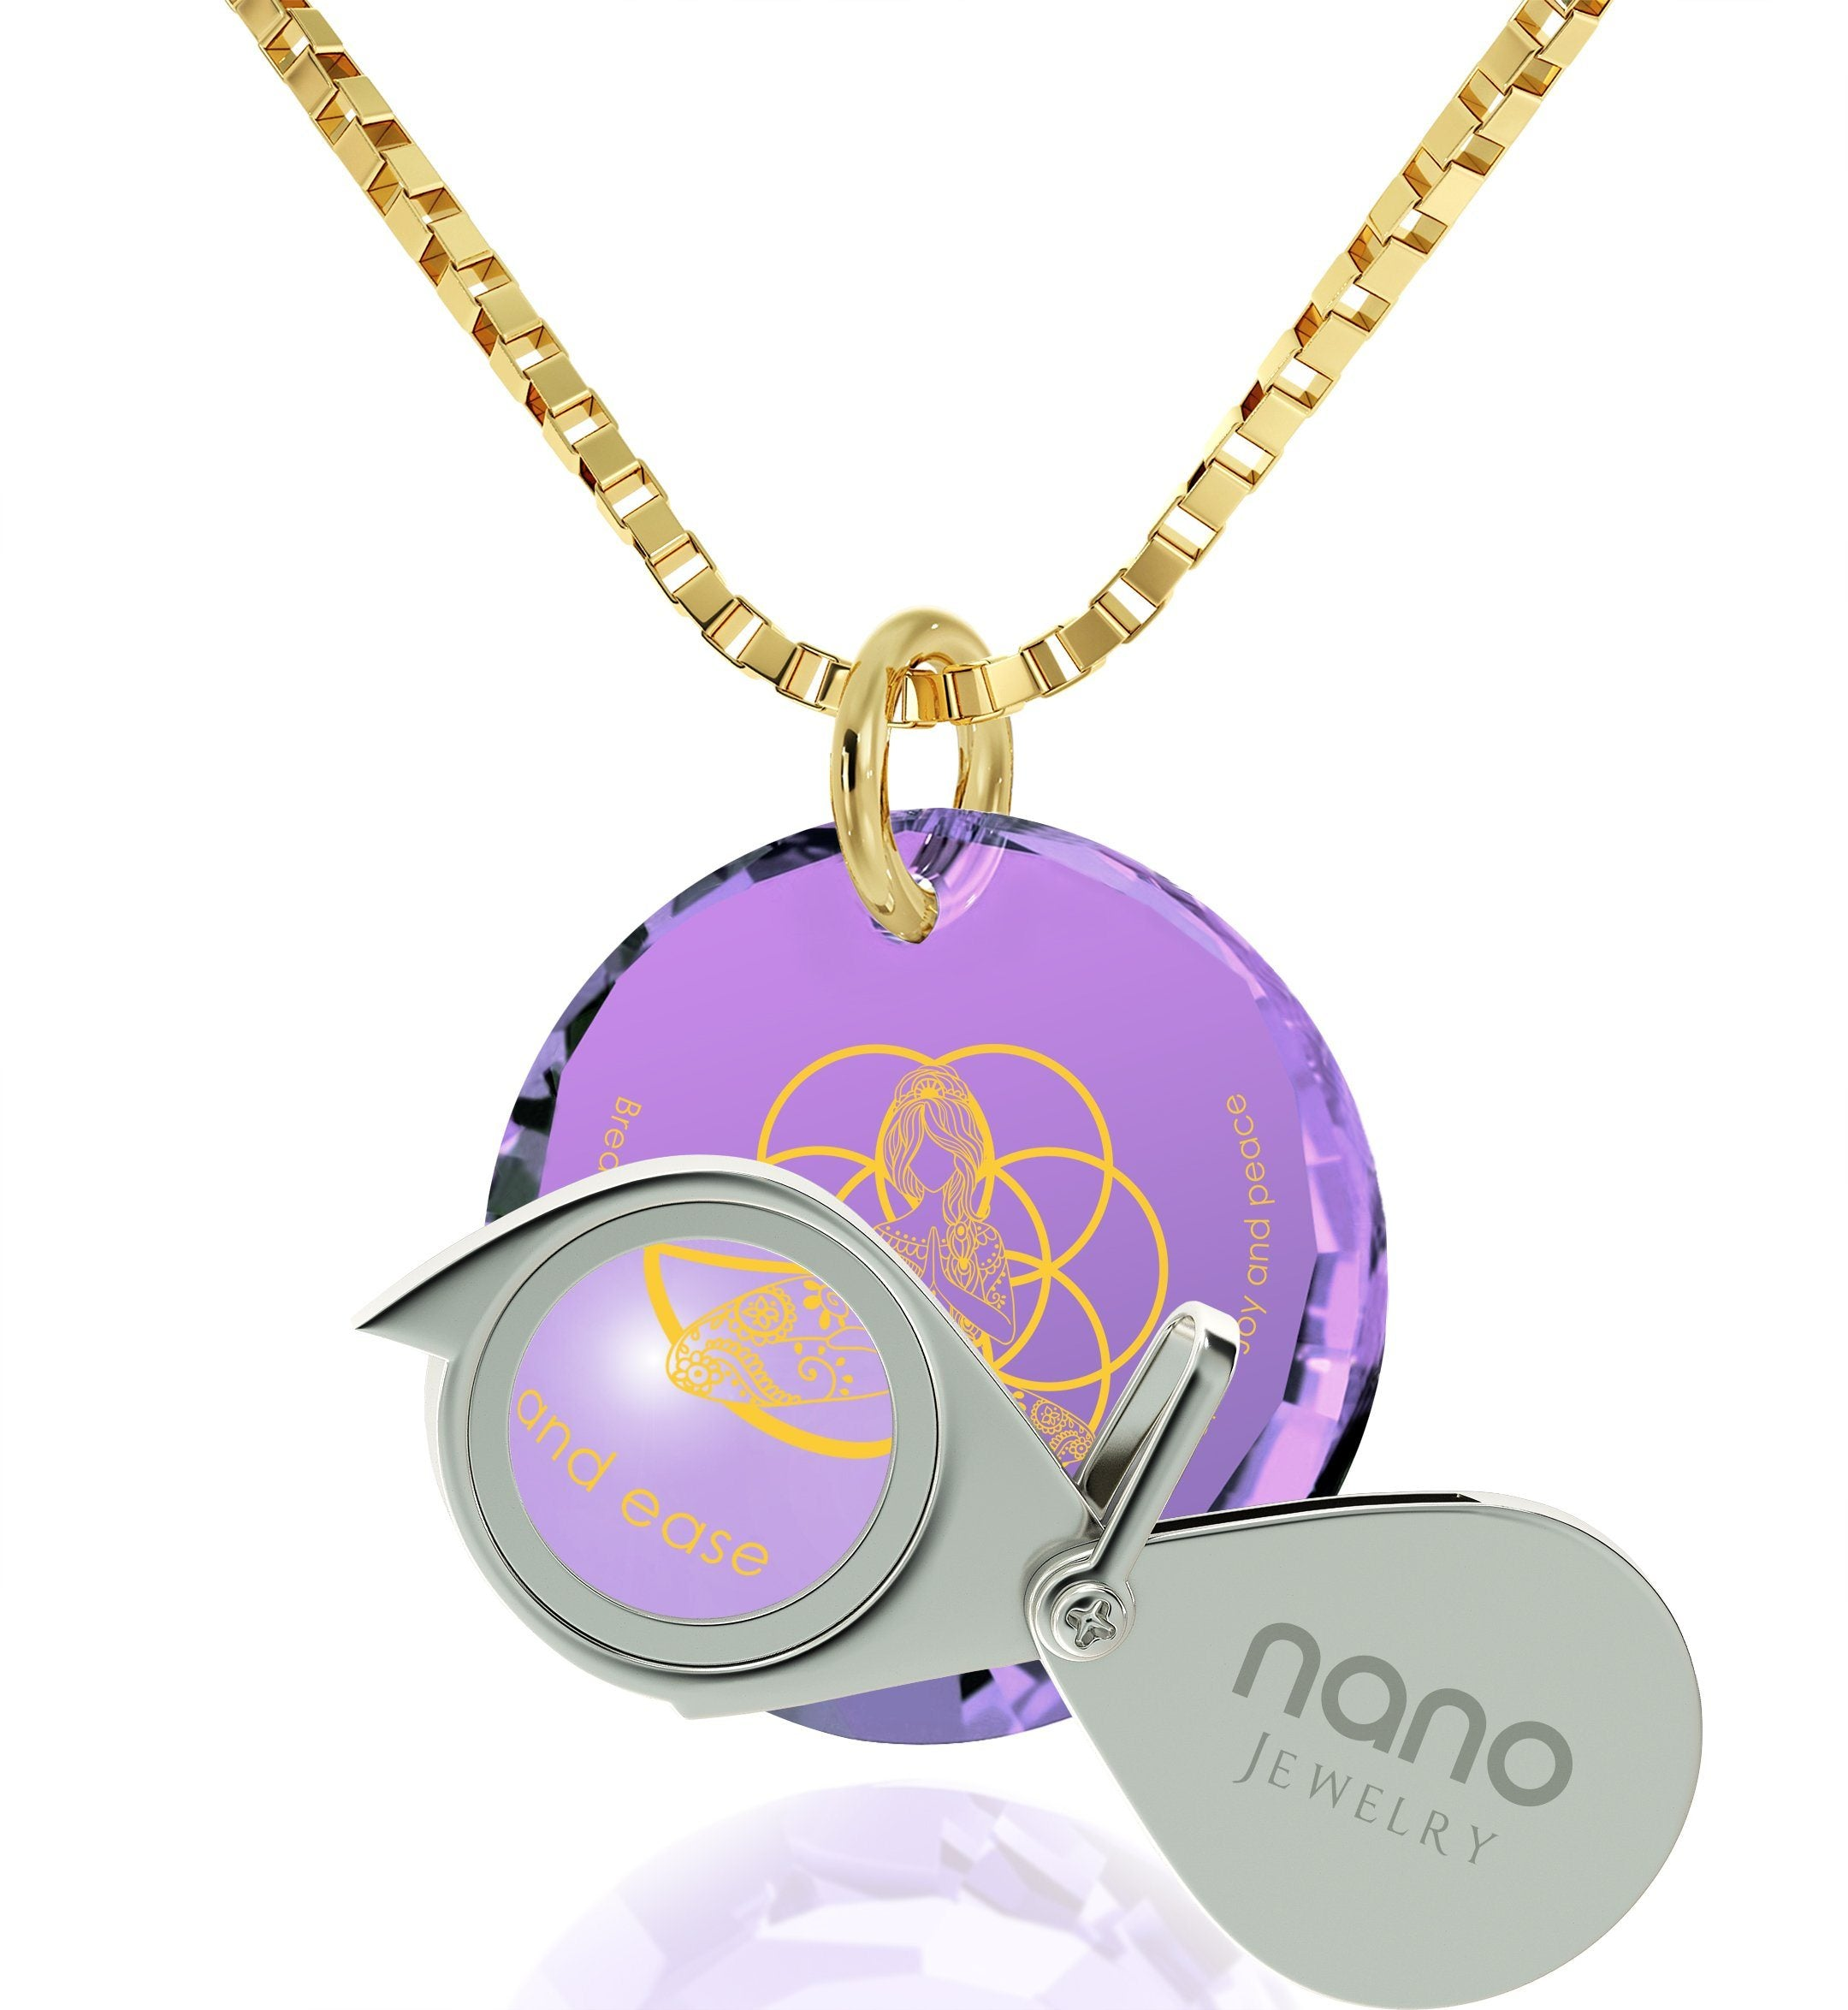 """Breathe in, Breathe out"" Engraved in 24k, Meditation Jewelry with Purple Stone, Spiritual Shop, Nano Jewelry"